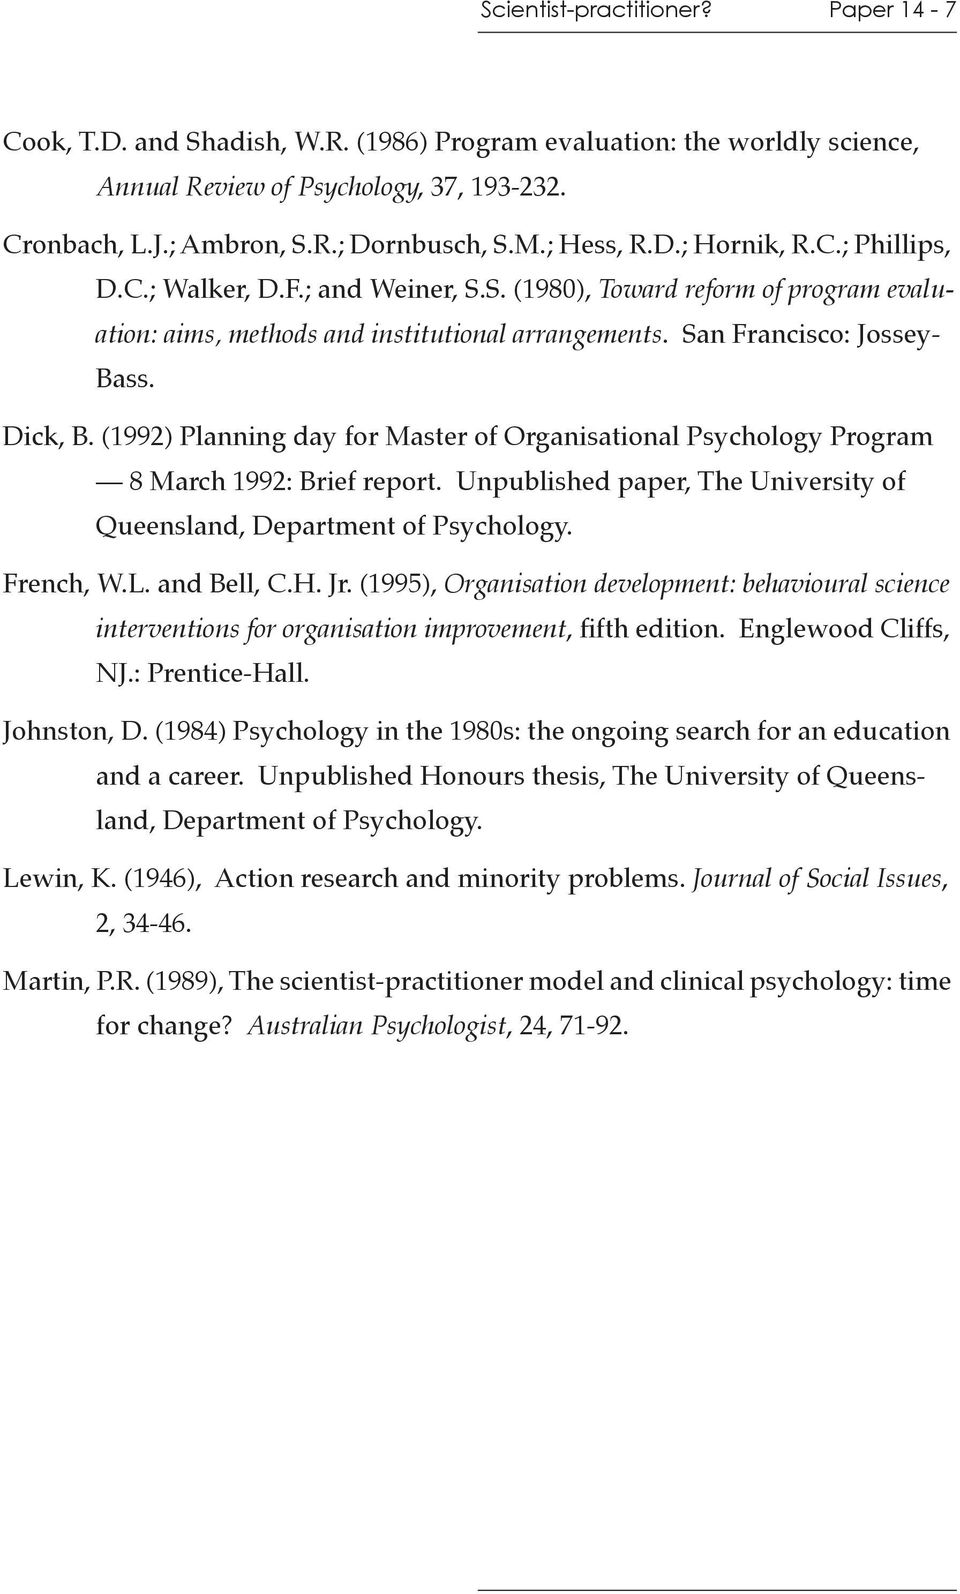 Dick, B. (1992) Planning day for Master of Organisational Psychology Program 8 March 1992: Brief report. Unpublished paper, The University of Queensland, Department of Psychology. French, W.L.